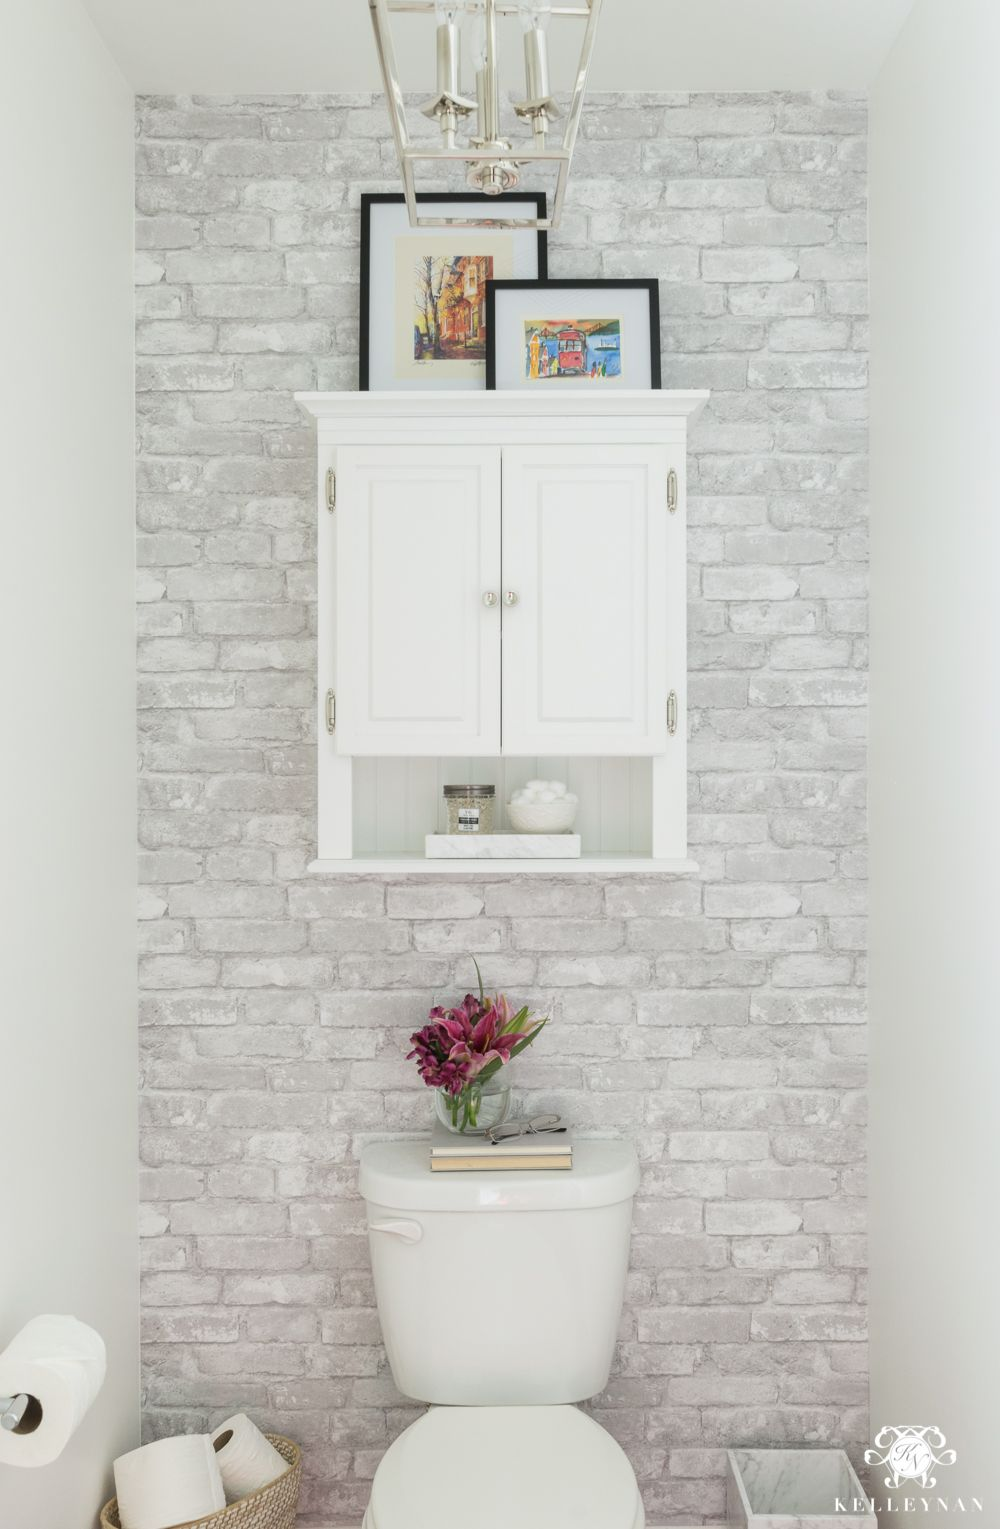 Toilet Room Makeover Reveal and Clever Bathroom Storage - Kelley Nan ...